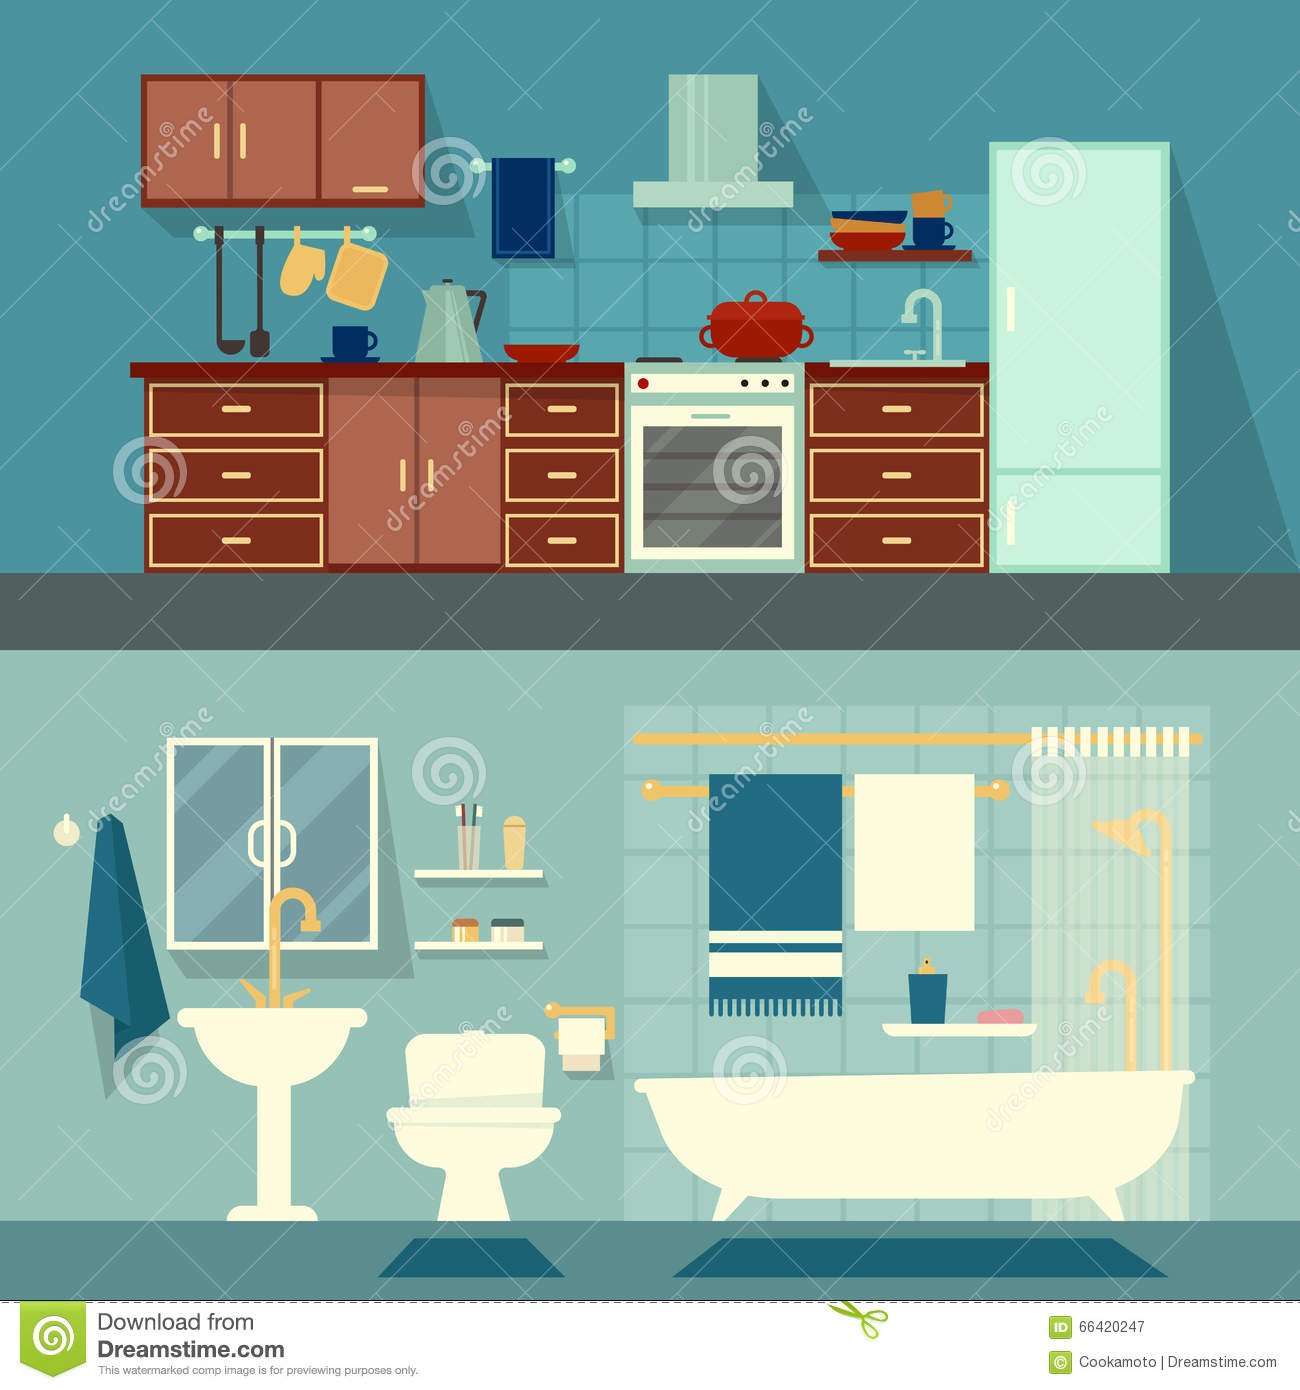 Interior Design For Kitchen For Flats: Vector Flat Illustration For Rooms Of Apartment, House